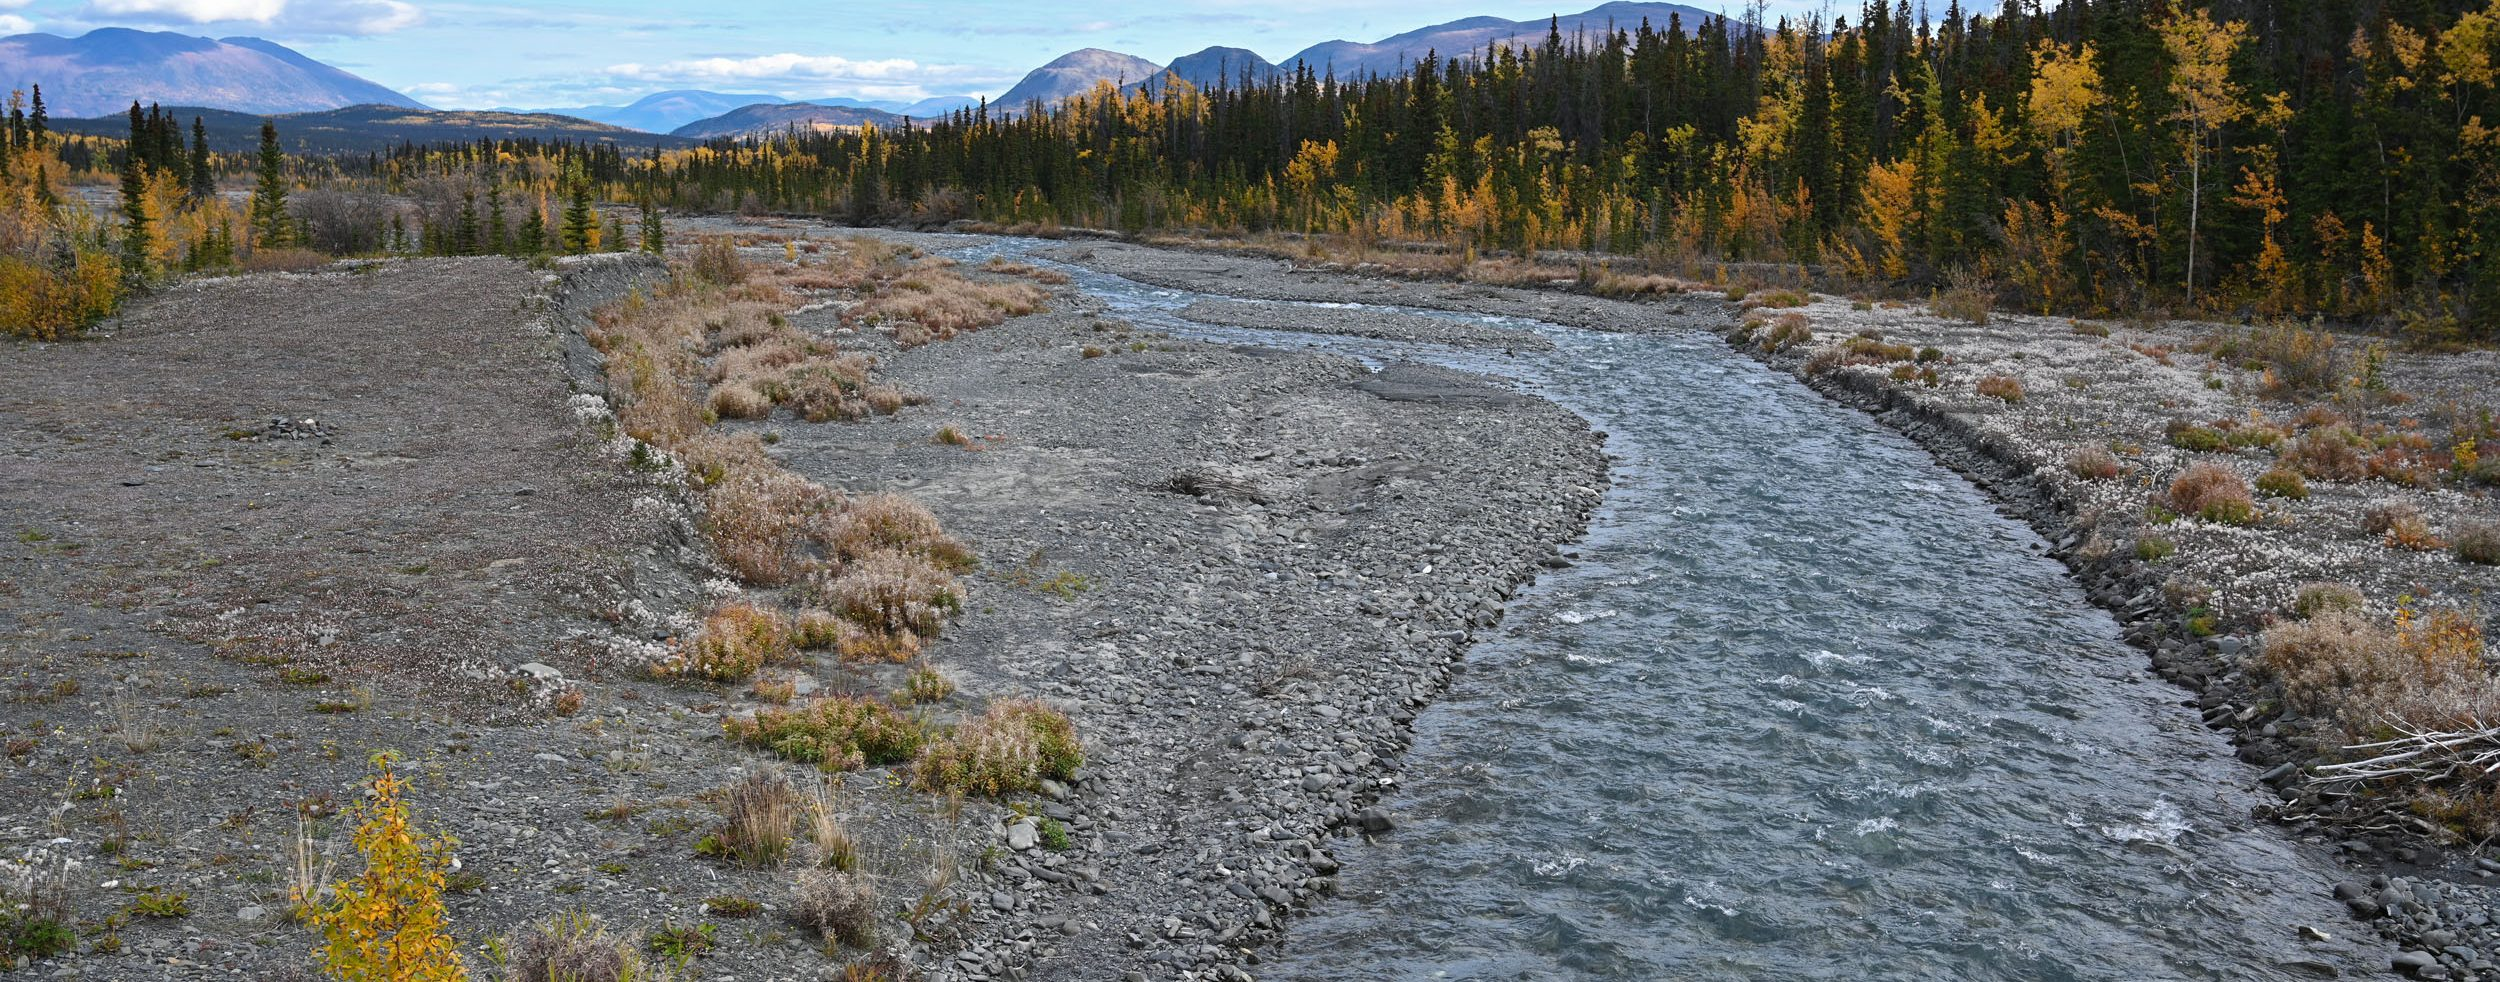 Quill Creek im Kluane Nationalpark